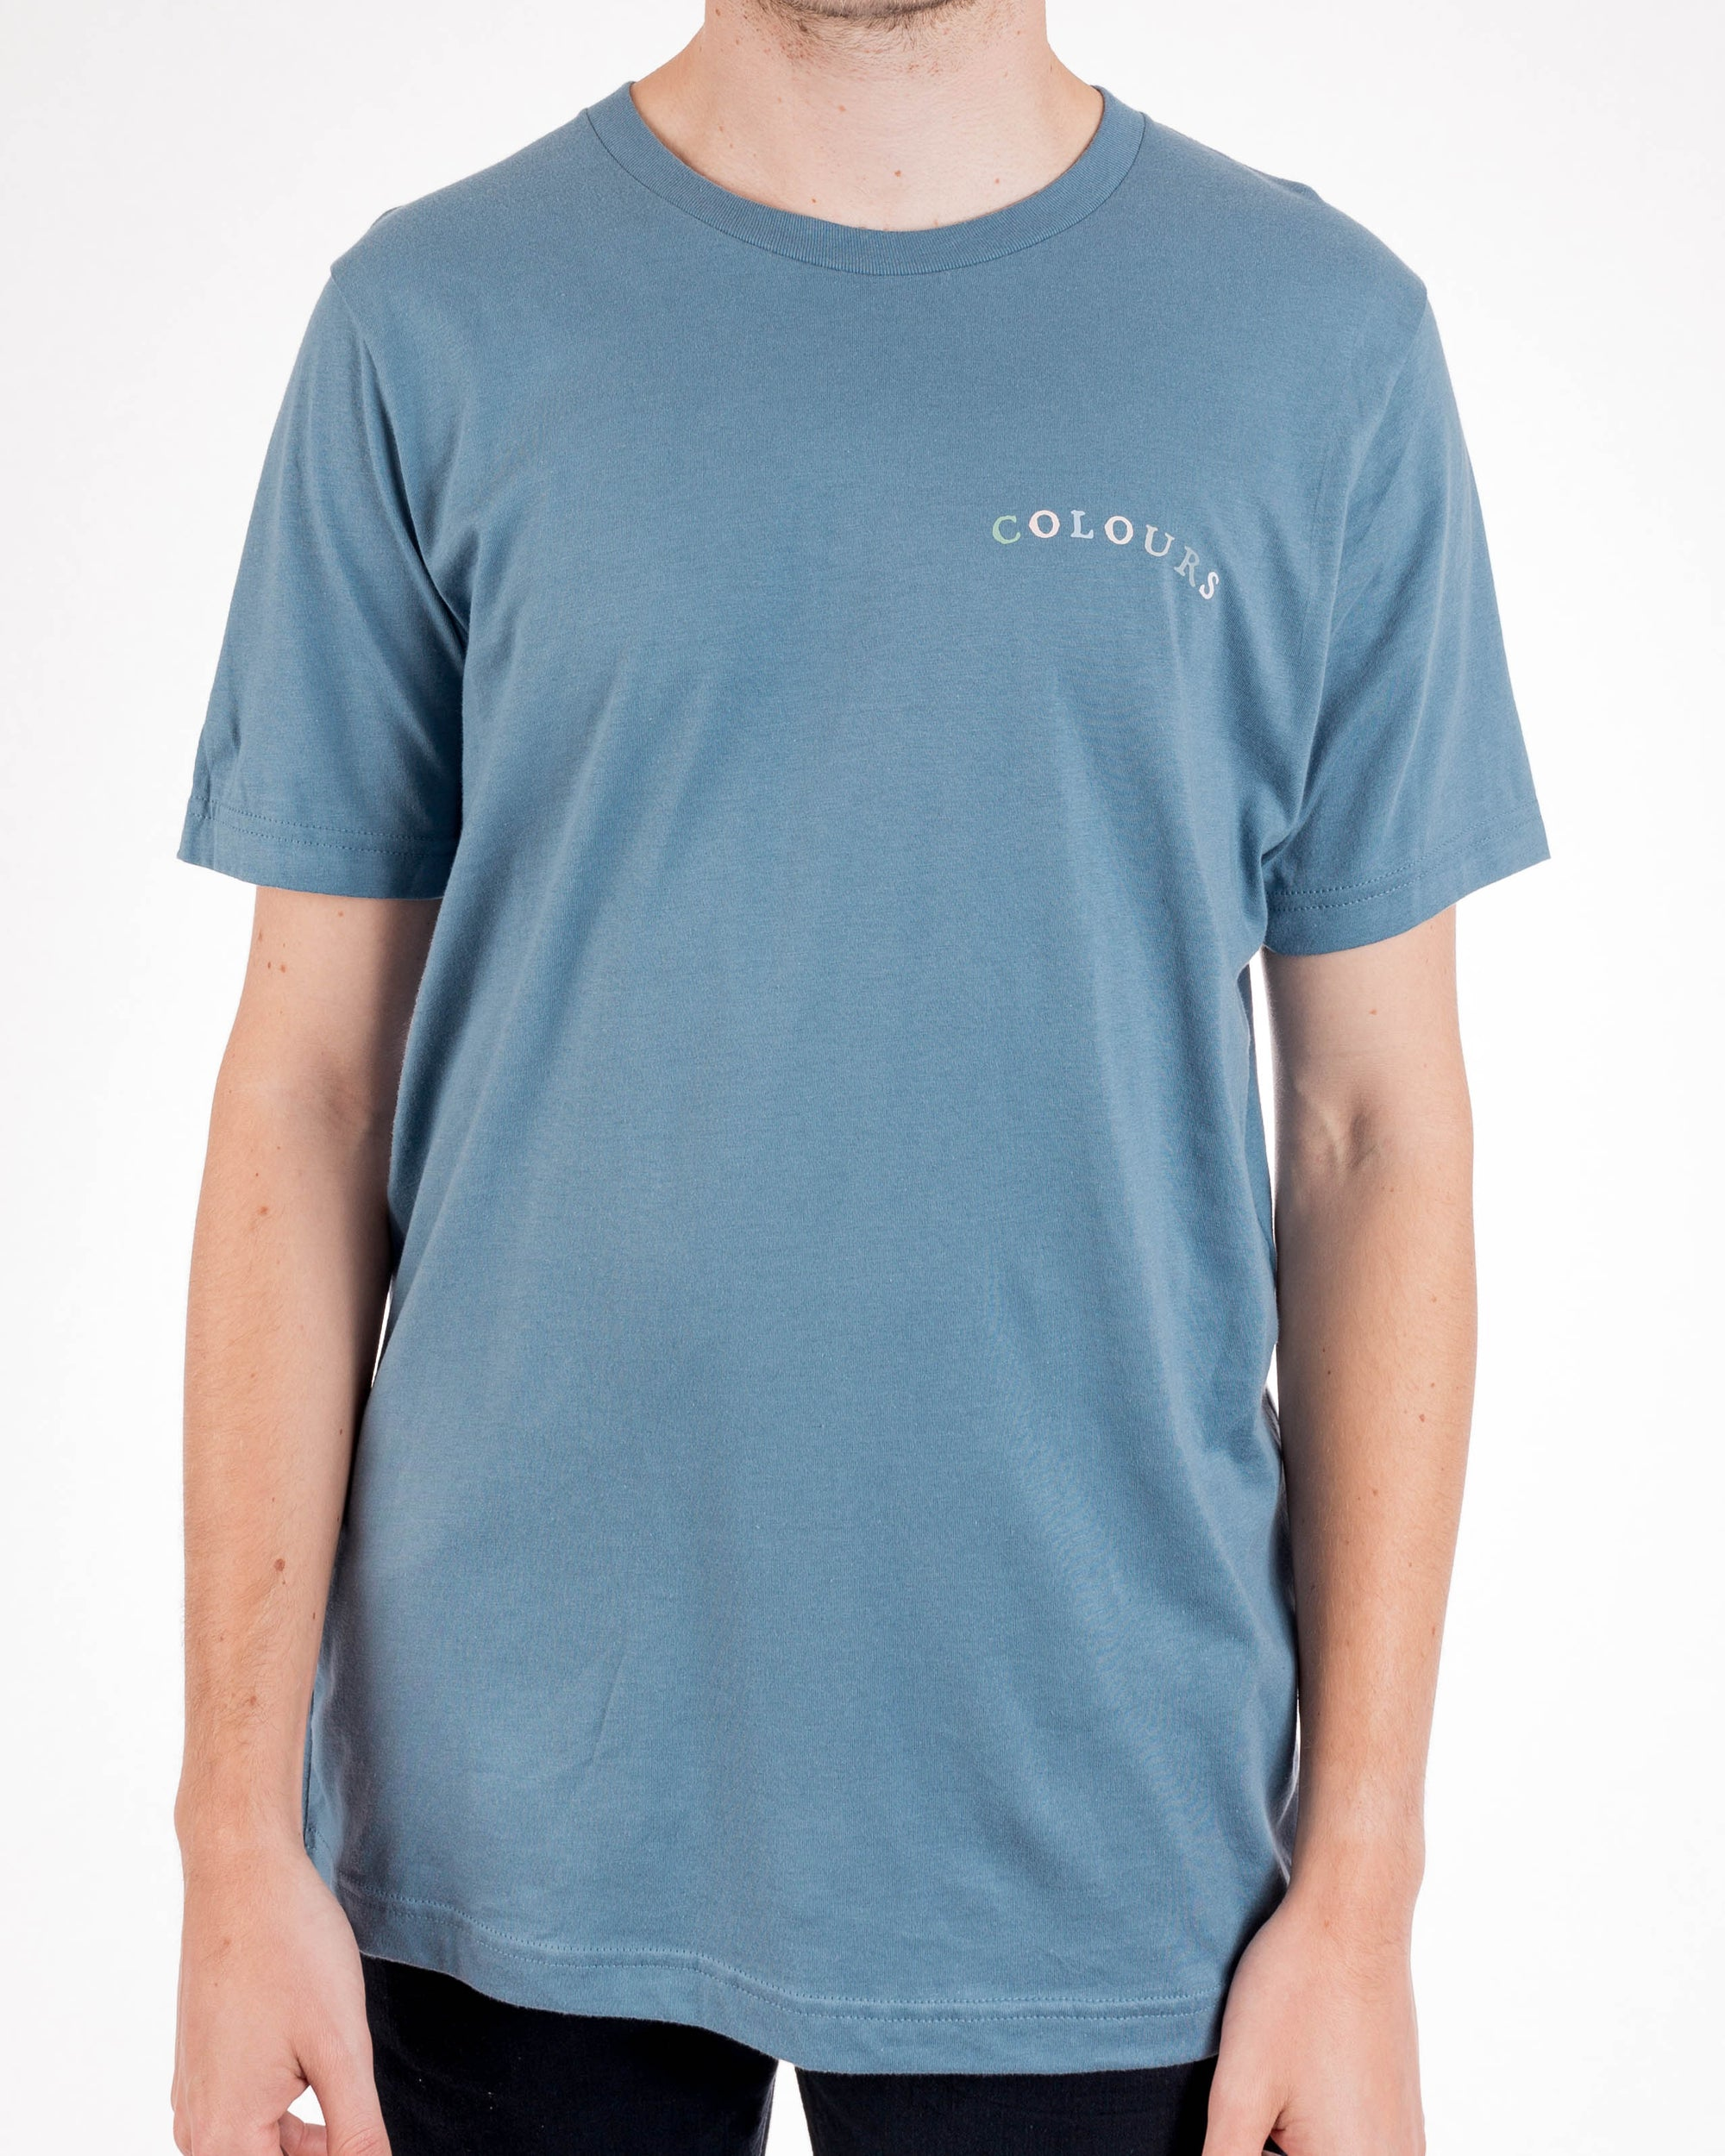 Steel Blue COLOURS T Shirt